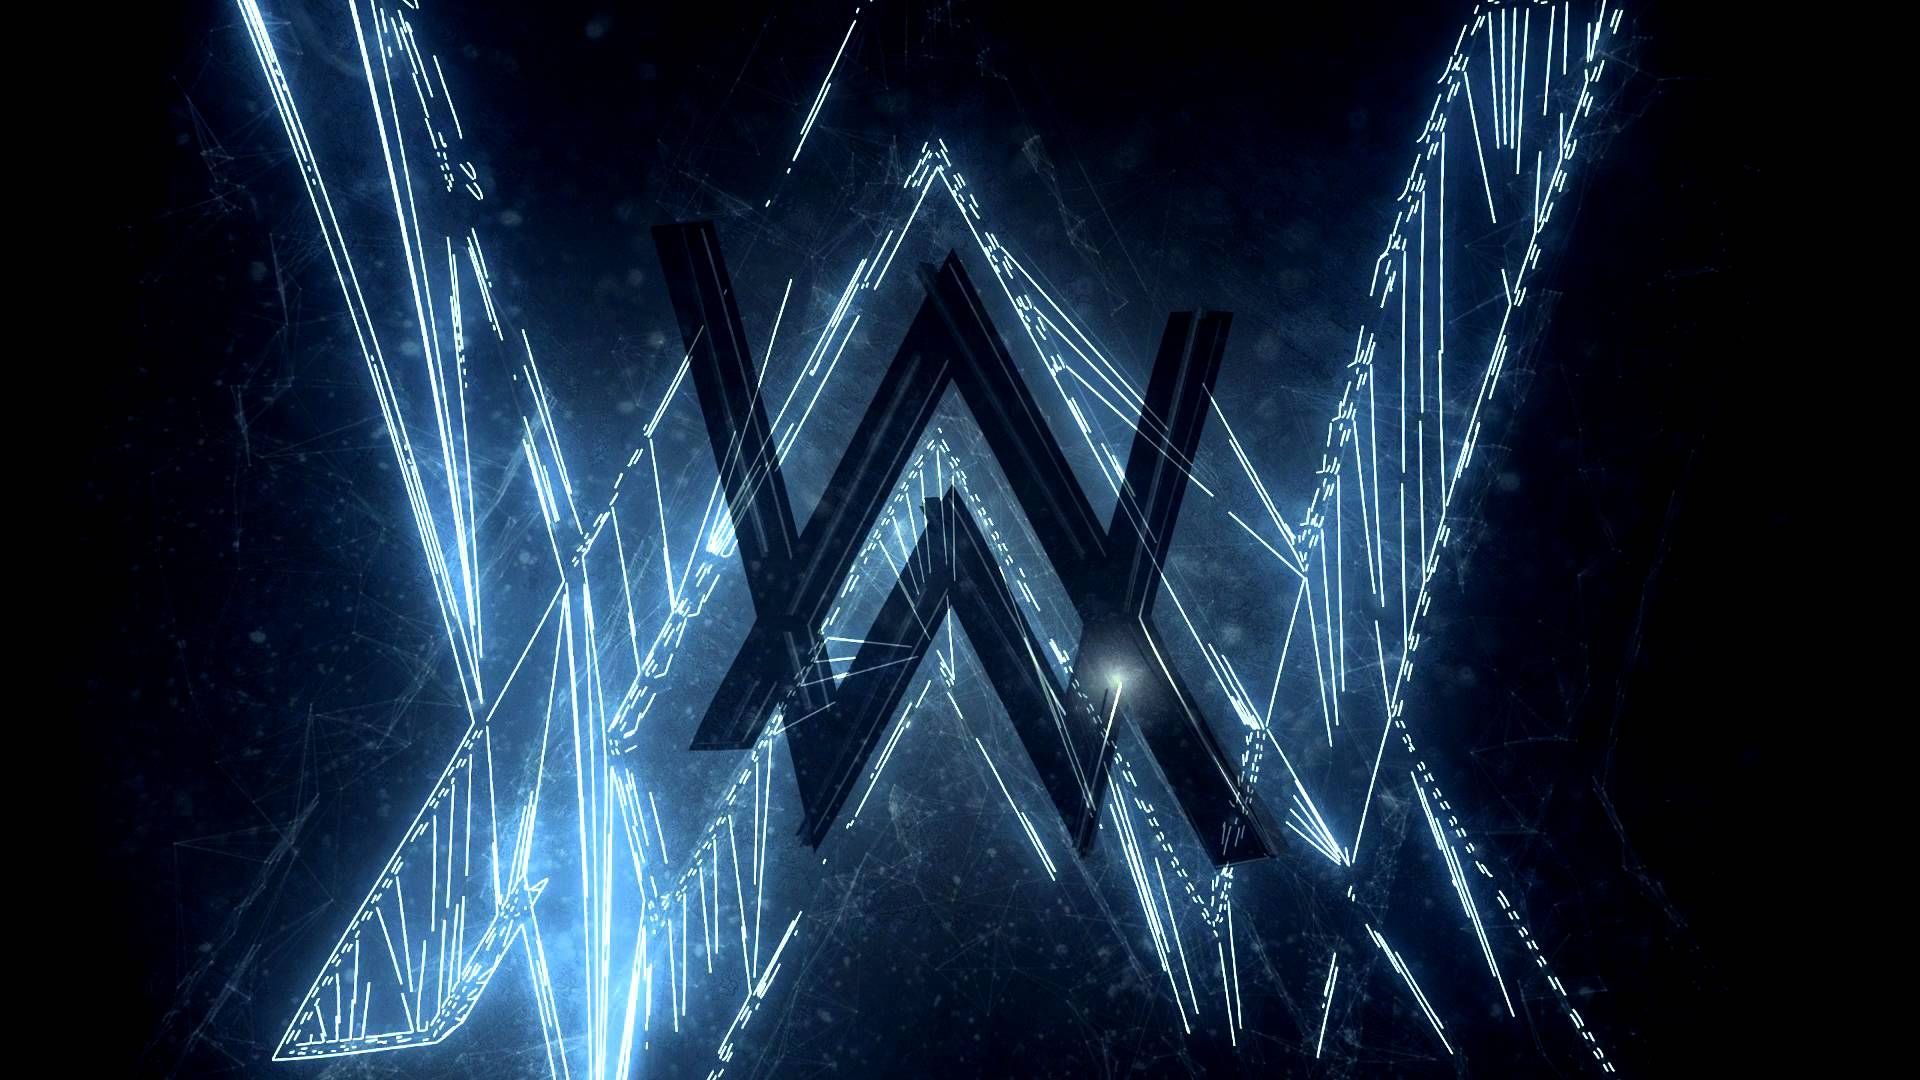 resultado de imagem para alan walker wallpaper pc faded in 2018